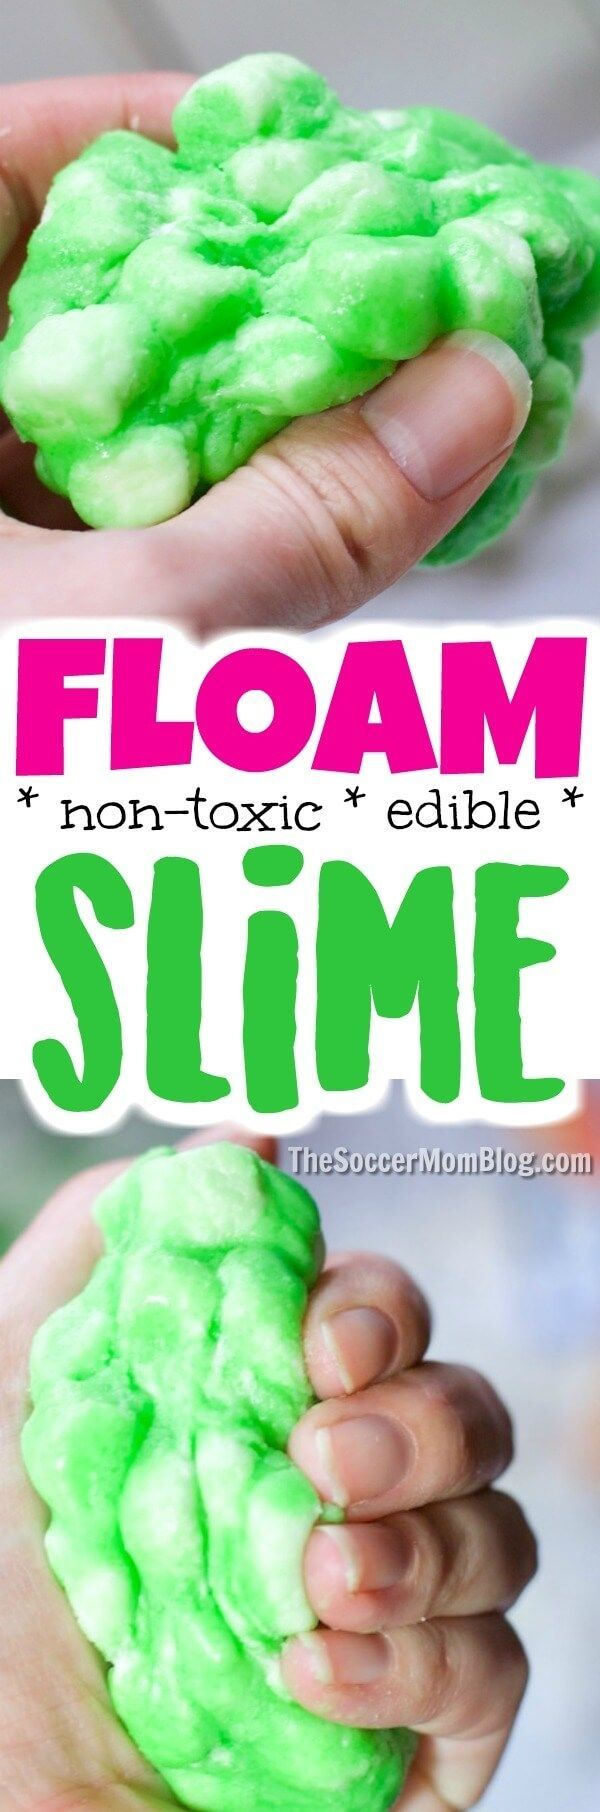 Diy edible floam slime recipe poofy squishy diy floam slime is easy to make at home only 4 ingredients ccuart Images